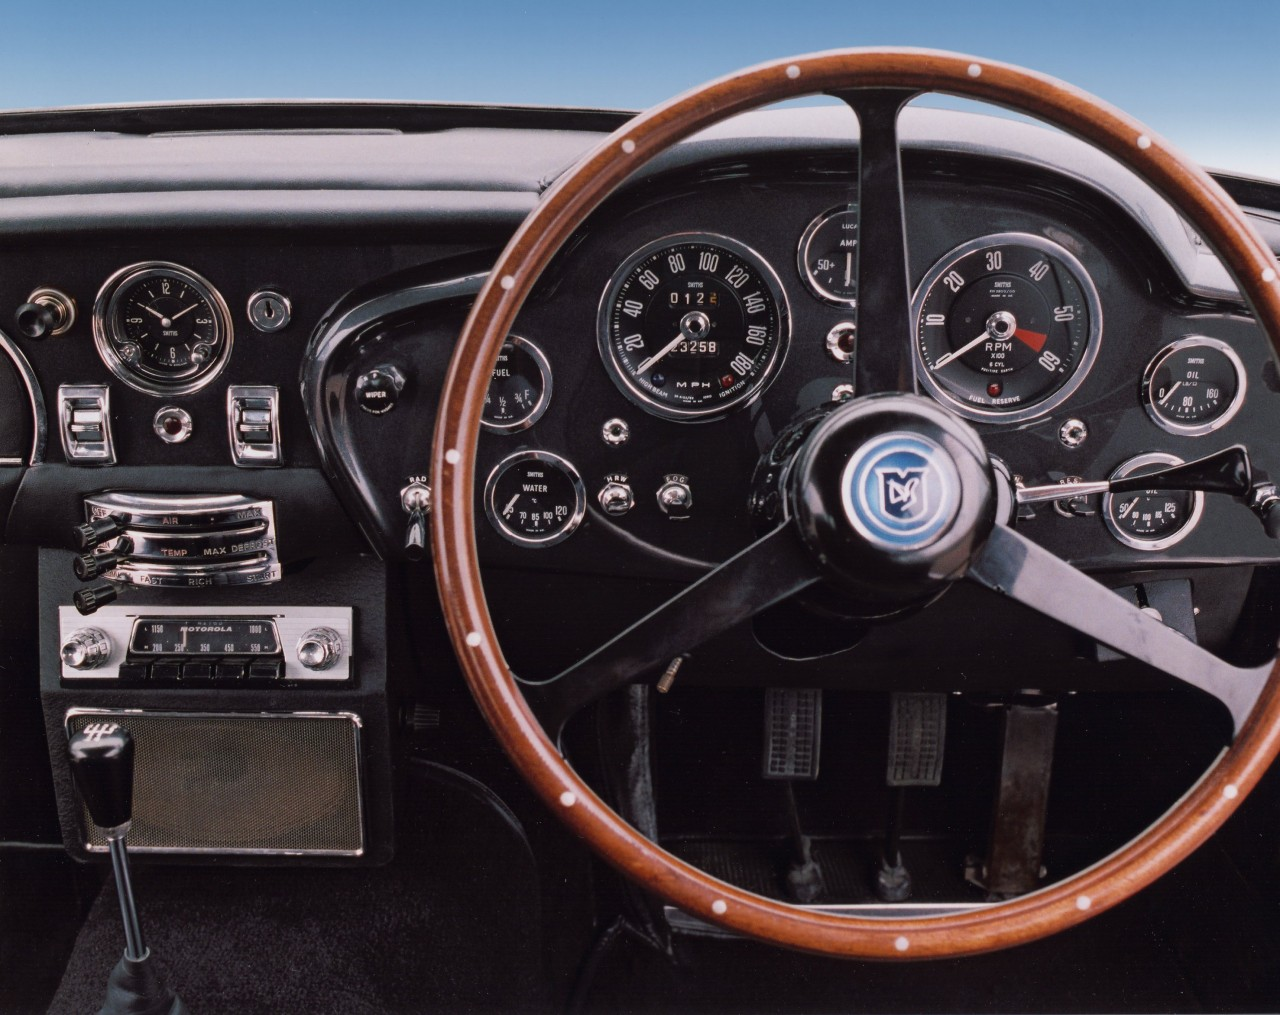 Aston Martin DB5 Speed Clocked By SMITHS Gauges